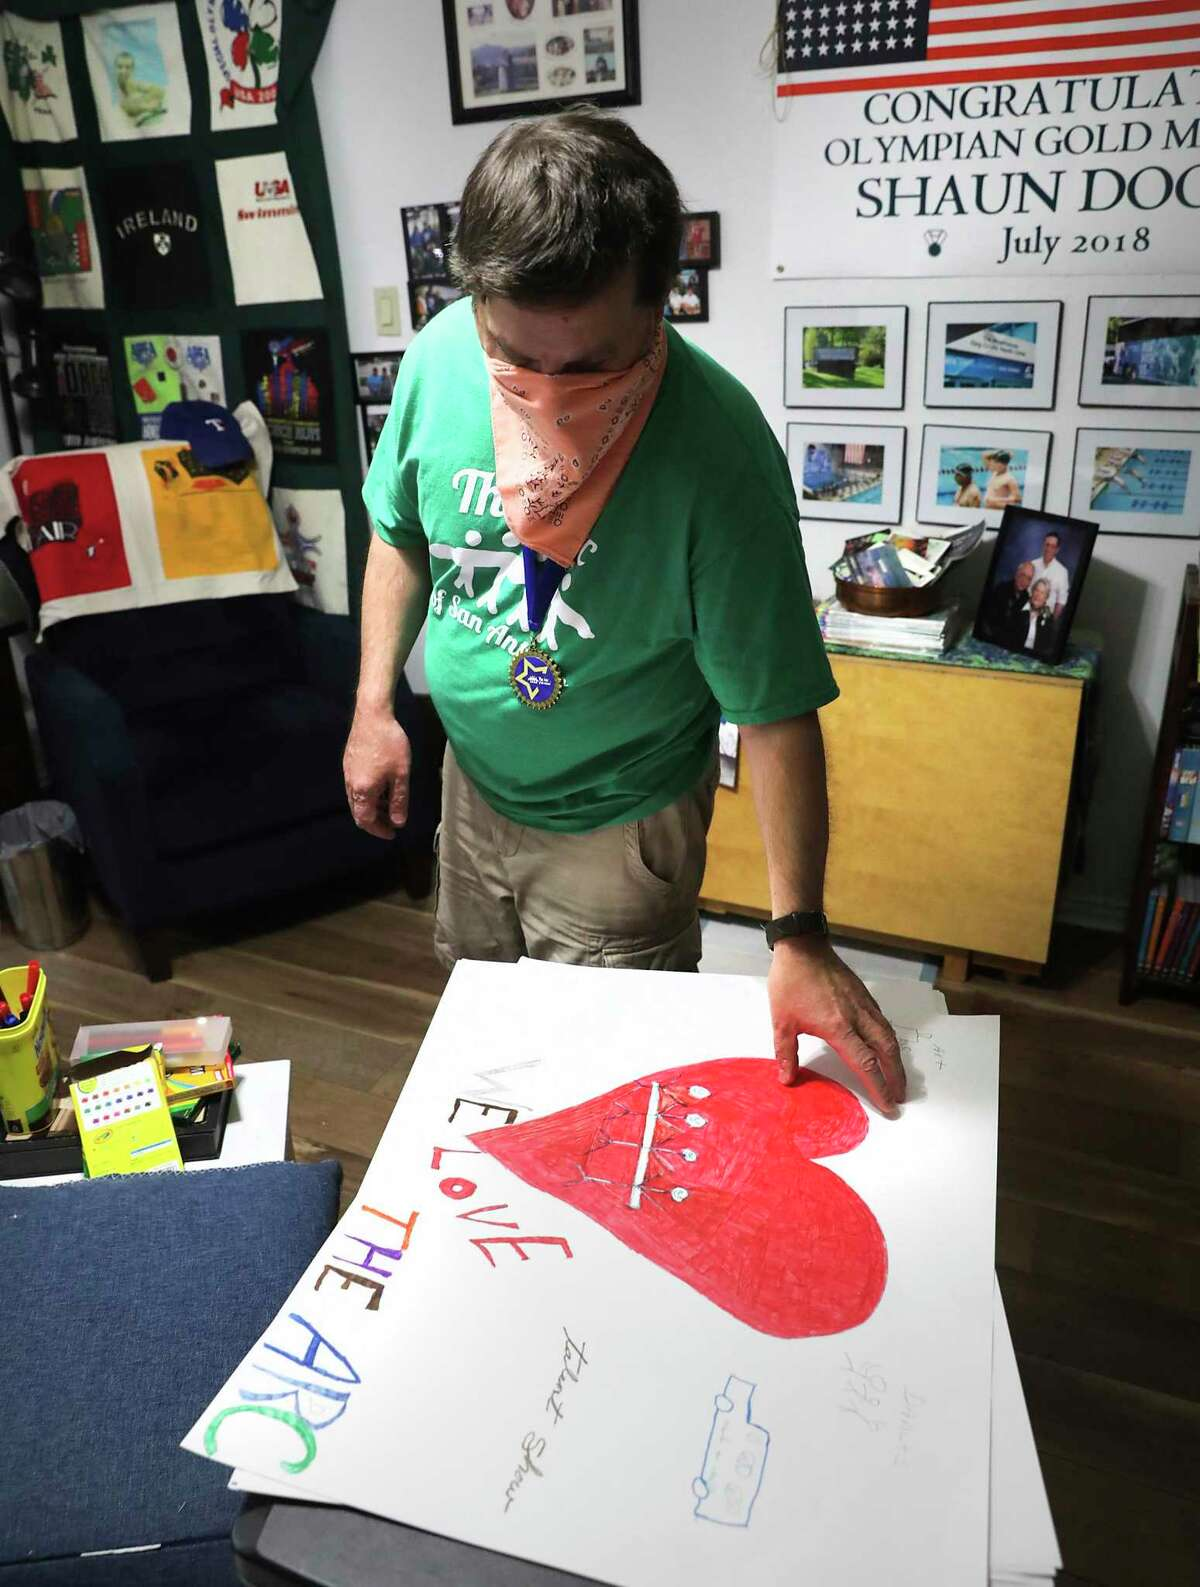 Shaun Dooley, a participant in the ARC's Adult Life Enrichment program, has found great satisfaction and meaningful relationships at the ARC, on Friday, May 22, 2020. He is making a poster to give to friends at the ARC.